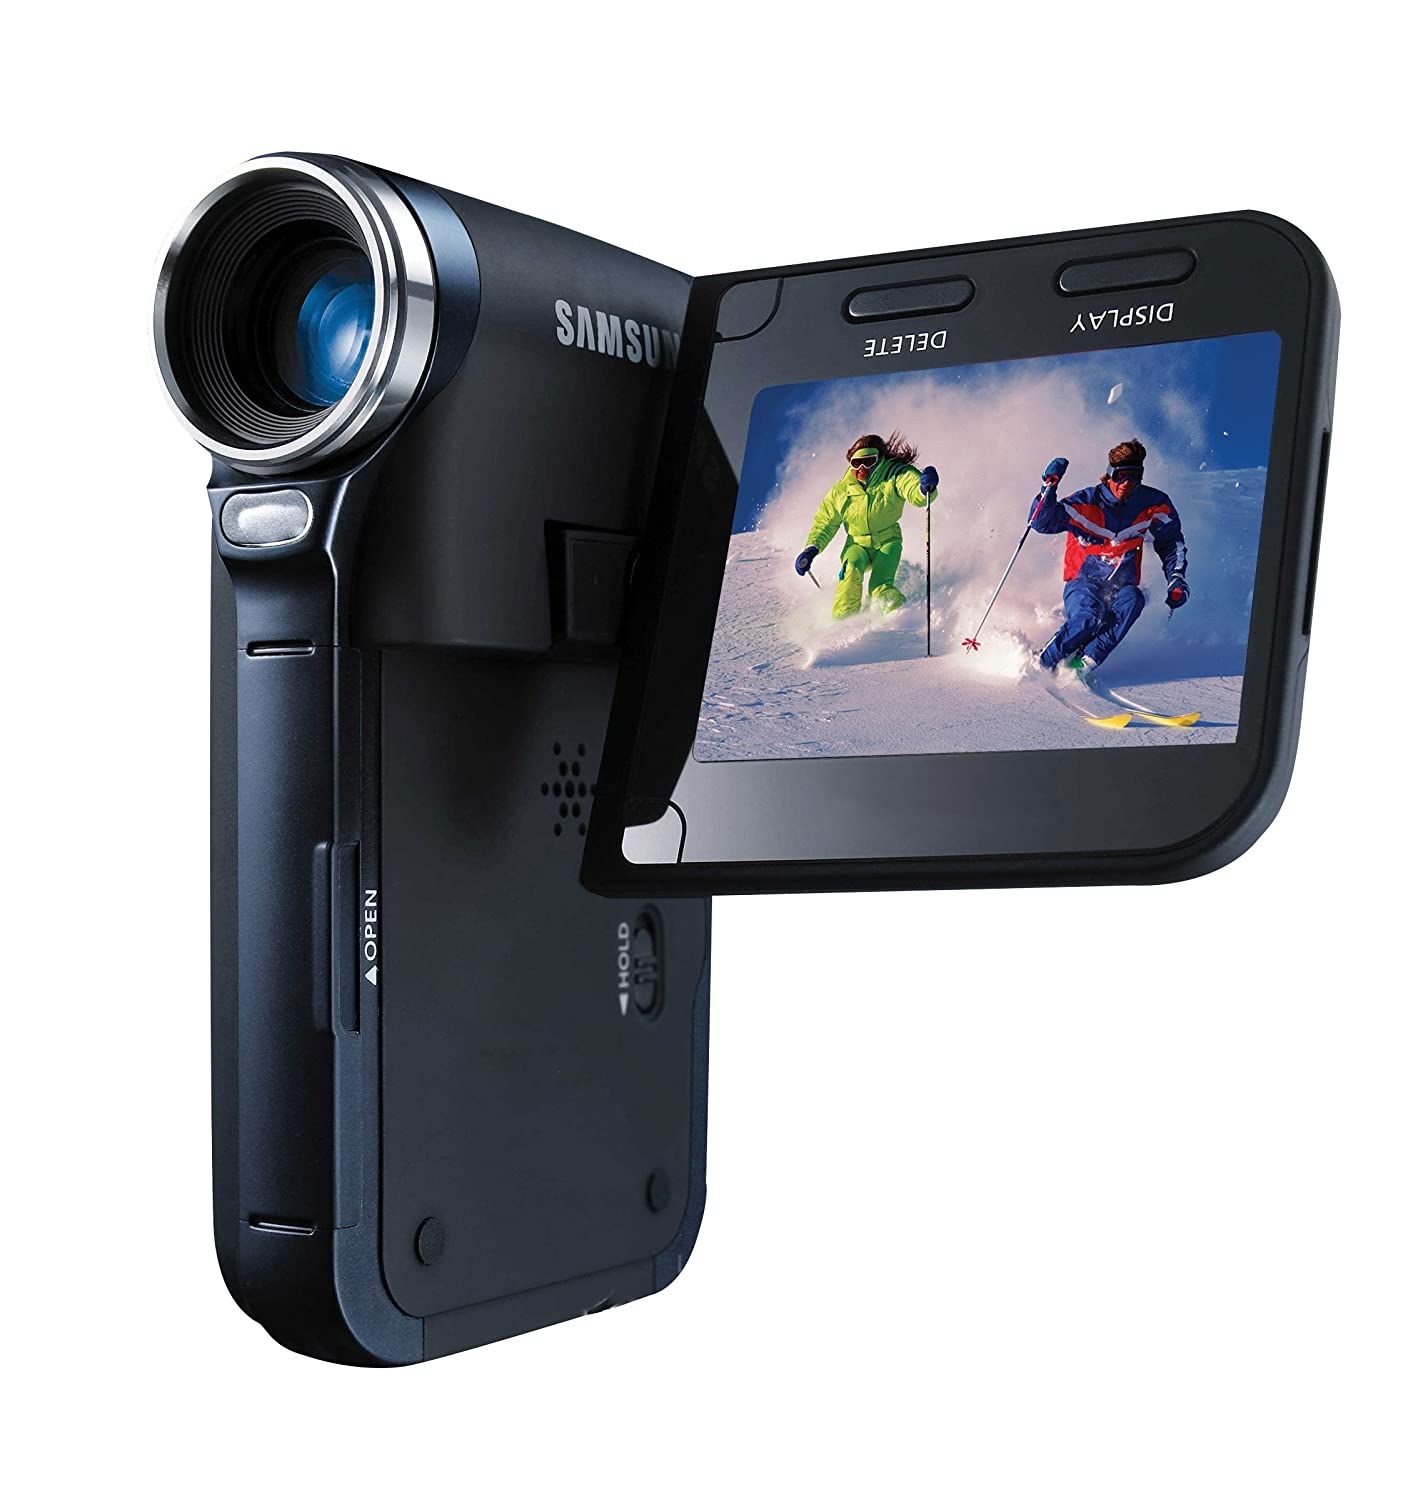 Amazon.com : Samsung SC-X300 Flash Memory Divx Camcorder with 10x Optical  Zoom (Discontinued by Manufacturer) : Camera & Photo